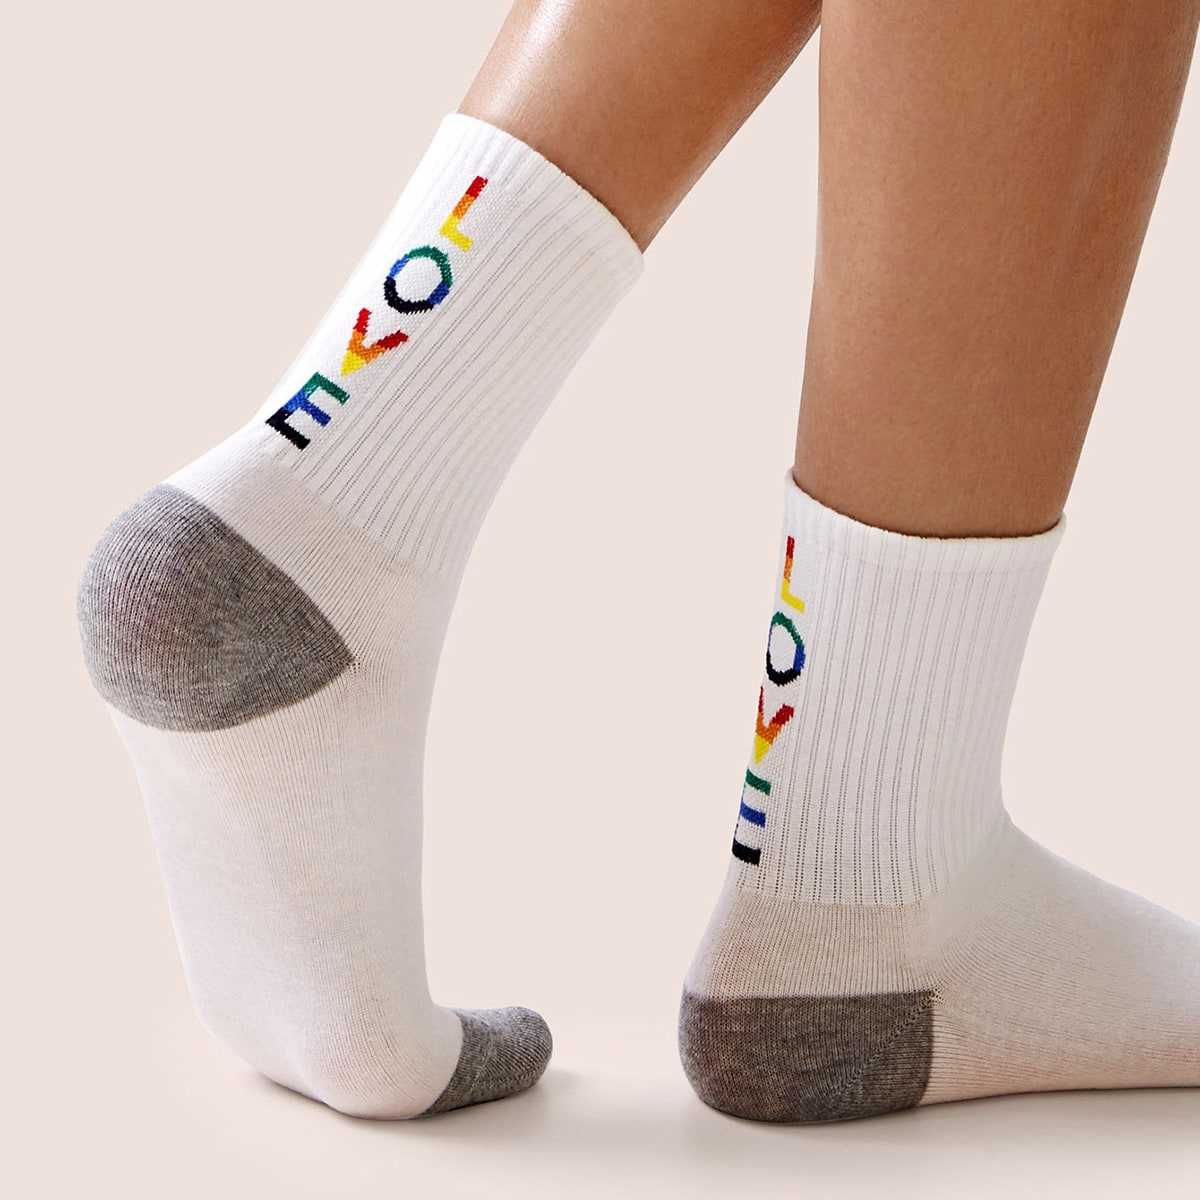 Colorful Letter Pattern Socks 1pair in White by ROMWE on GOOFASH